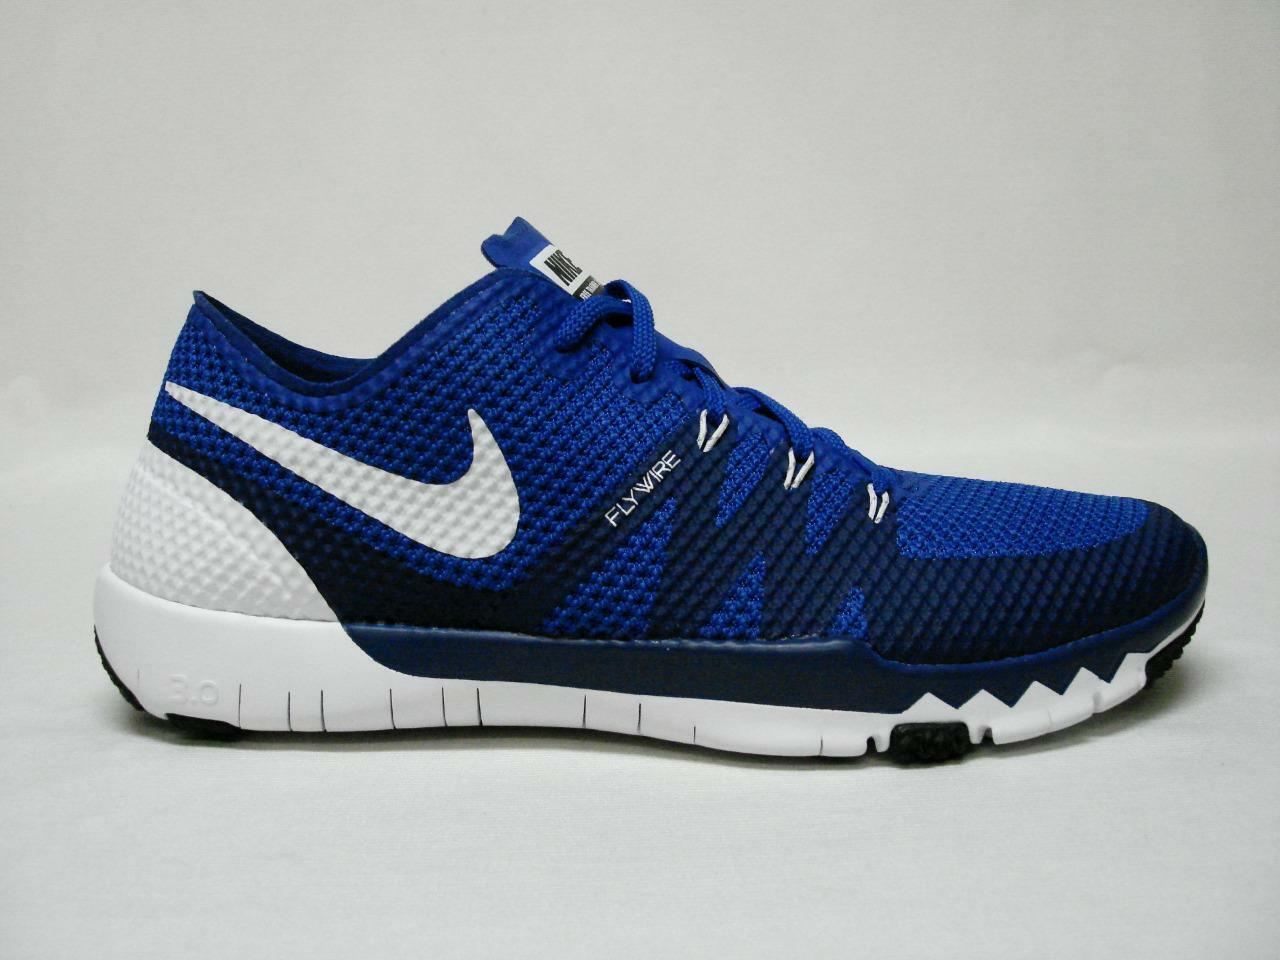 NEW NIKE FREE TRAINER 3.0 V3 MEN'S SHOE'S 11.5 BLUE SWEET LOOKING SHOE'S Special limited time